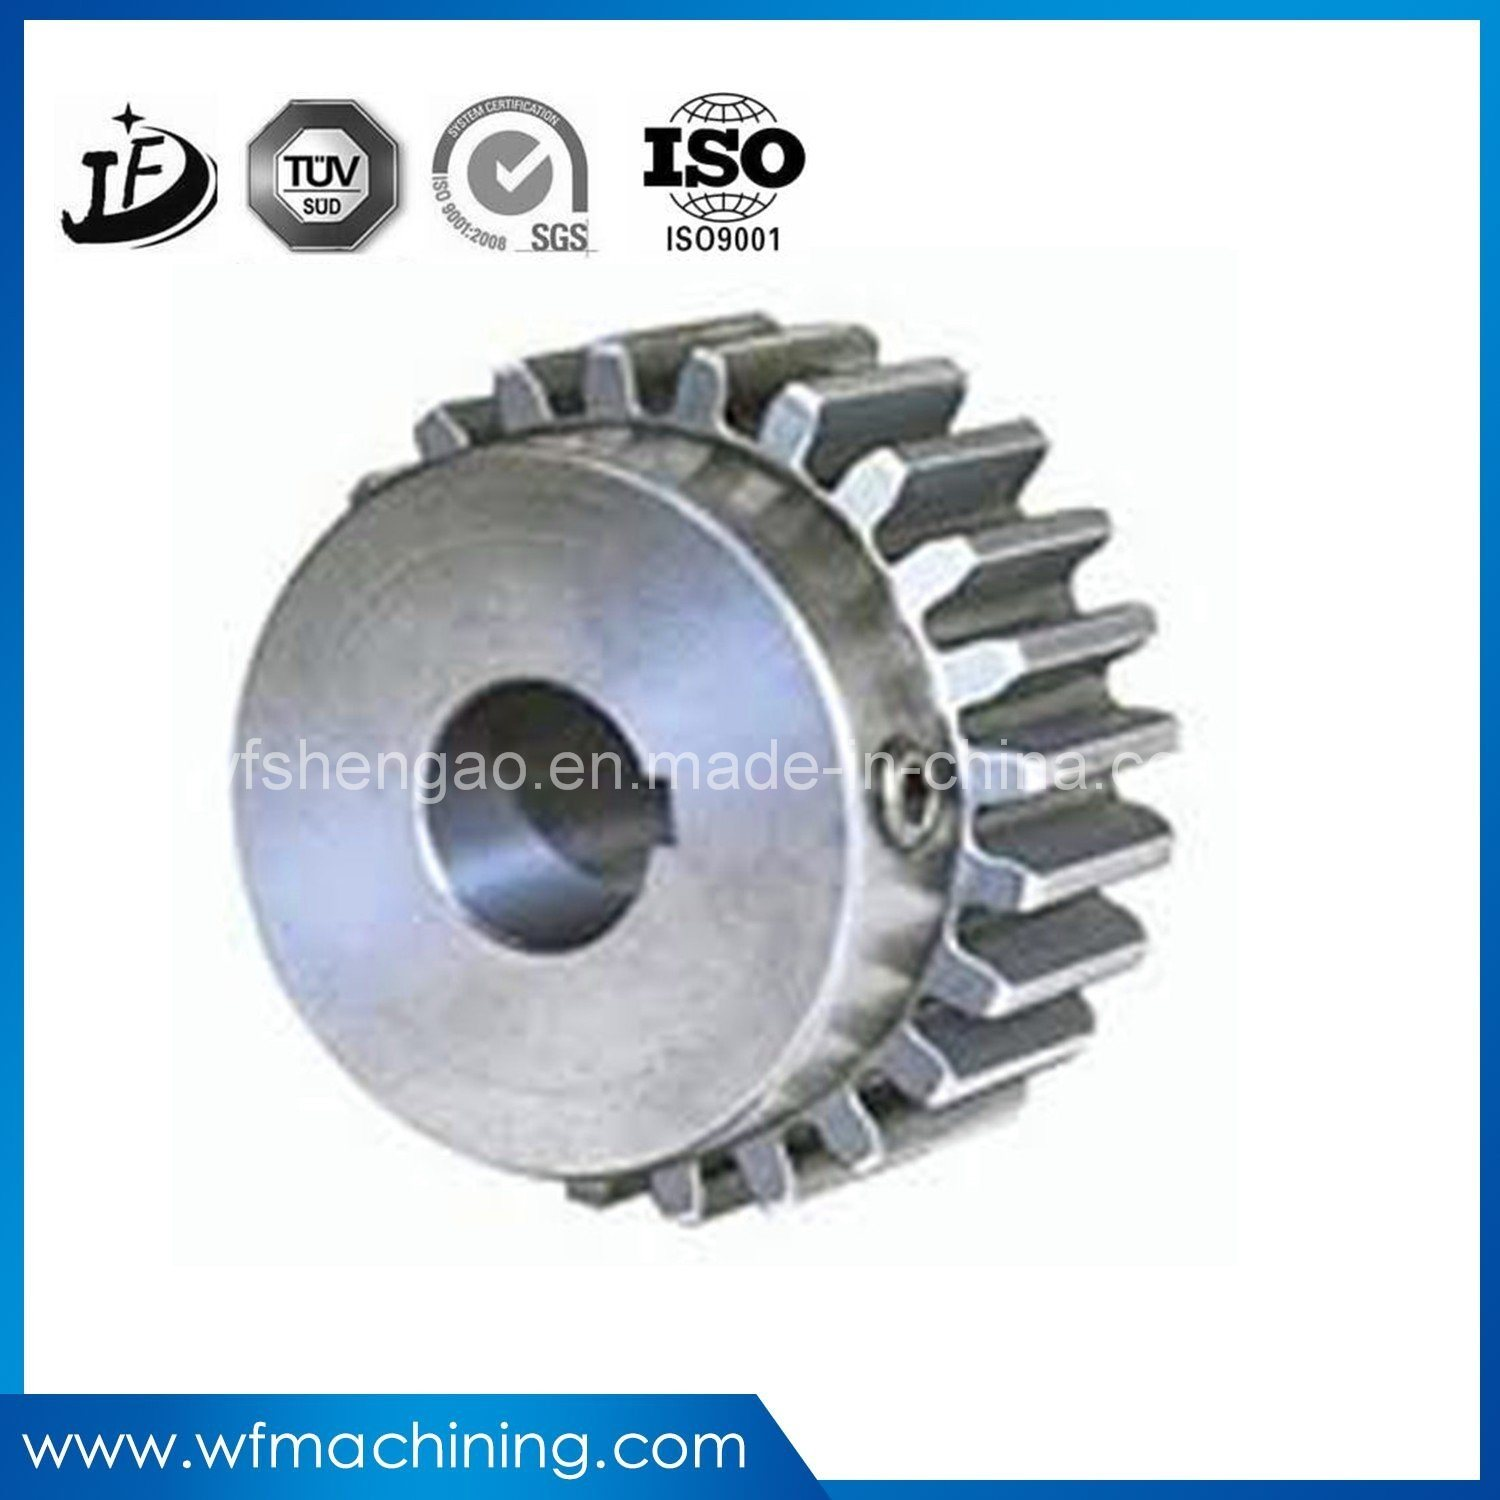 Gearbox Engine Parts Hardened and Tempered Steel Machined Pinion Differential Bevel/Planetary/Sprocket Gear for Transmission